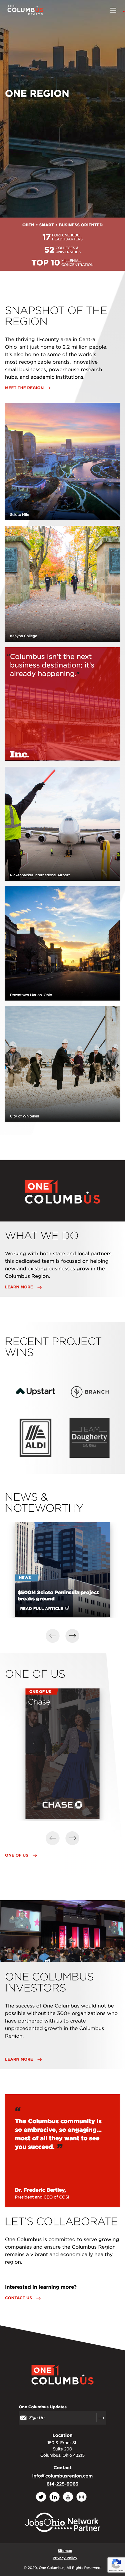 The-Columbus-Region-Partners-Committed-to-Economic-Growth-in-Central-Ohio (1)